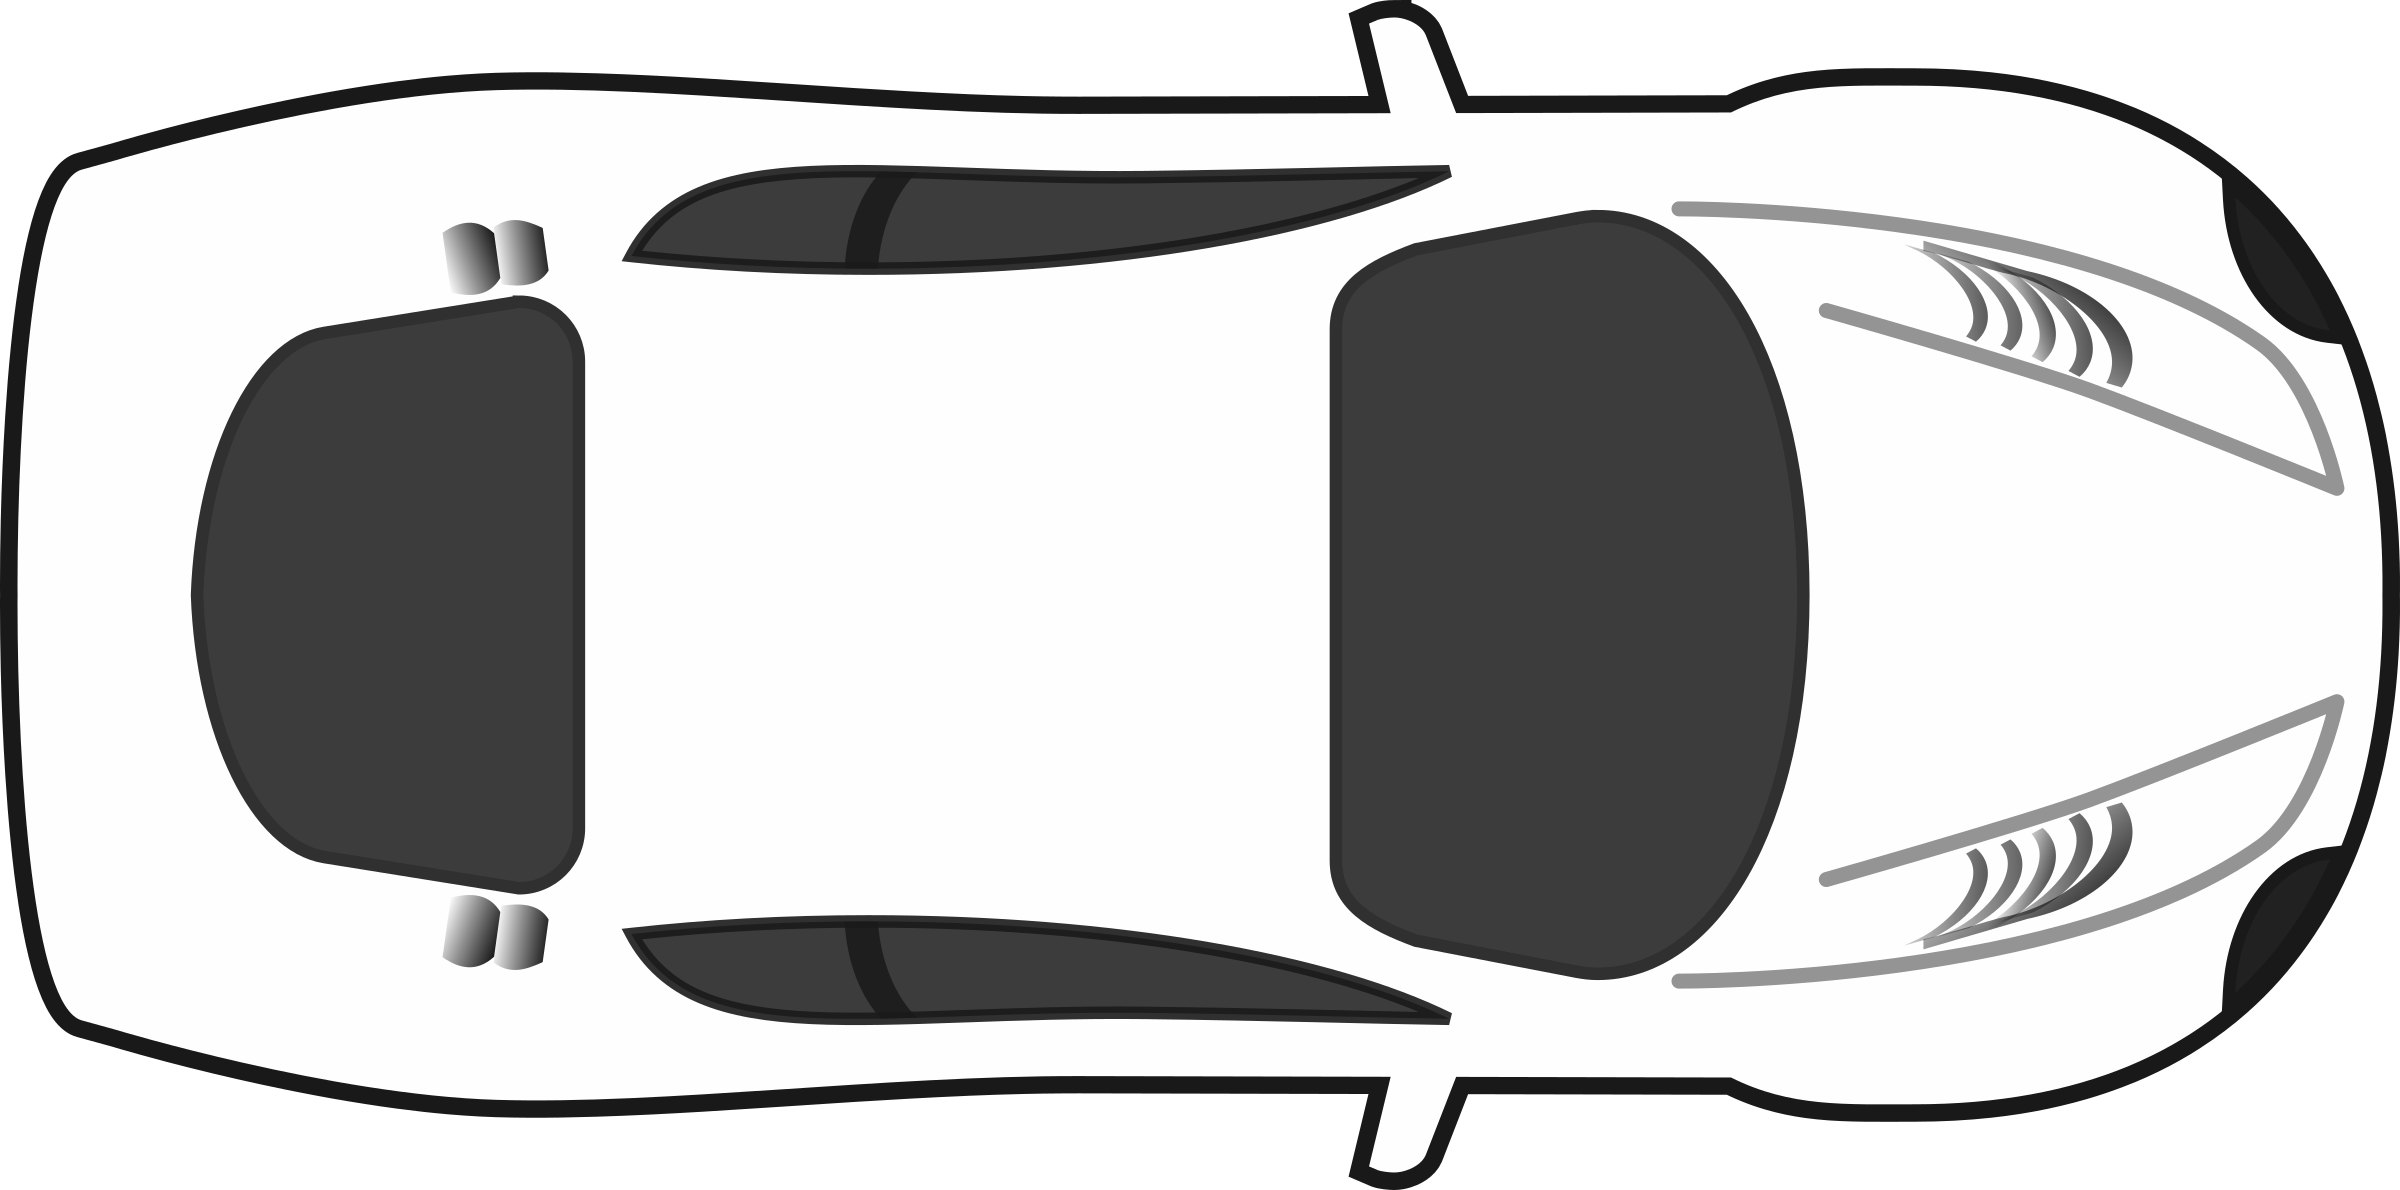 Aerial view of car clipart clip transparent 28+ Collection of Top View Of A Car Clipart | High quality, free ... clip transparent